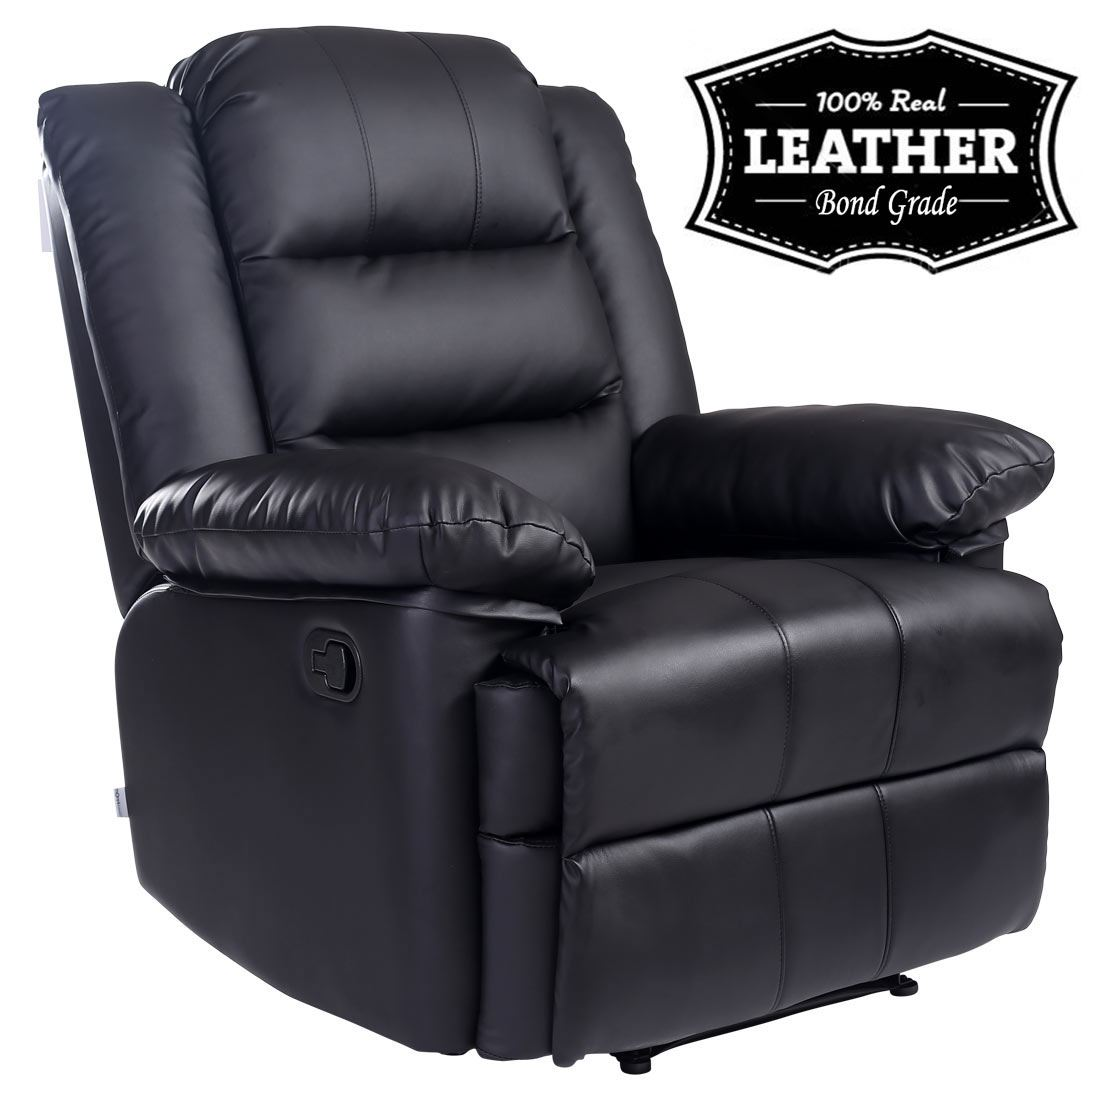 Loxley Black Leather Recliner Armchair Sofa Home Lounge Chair Reclining Gaming Ebay